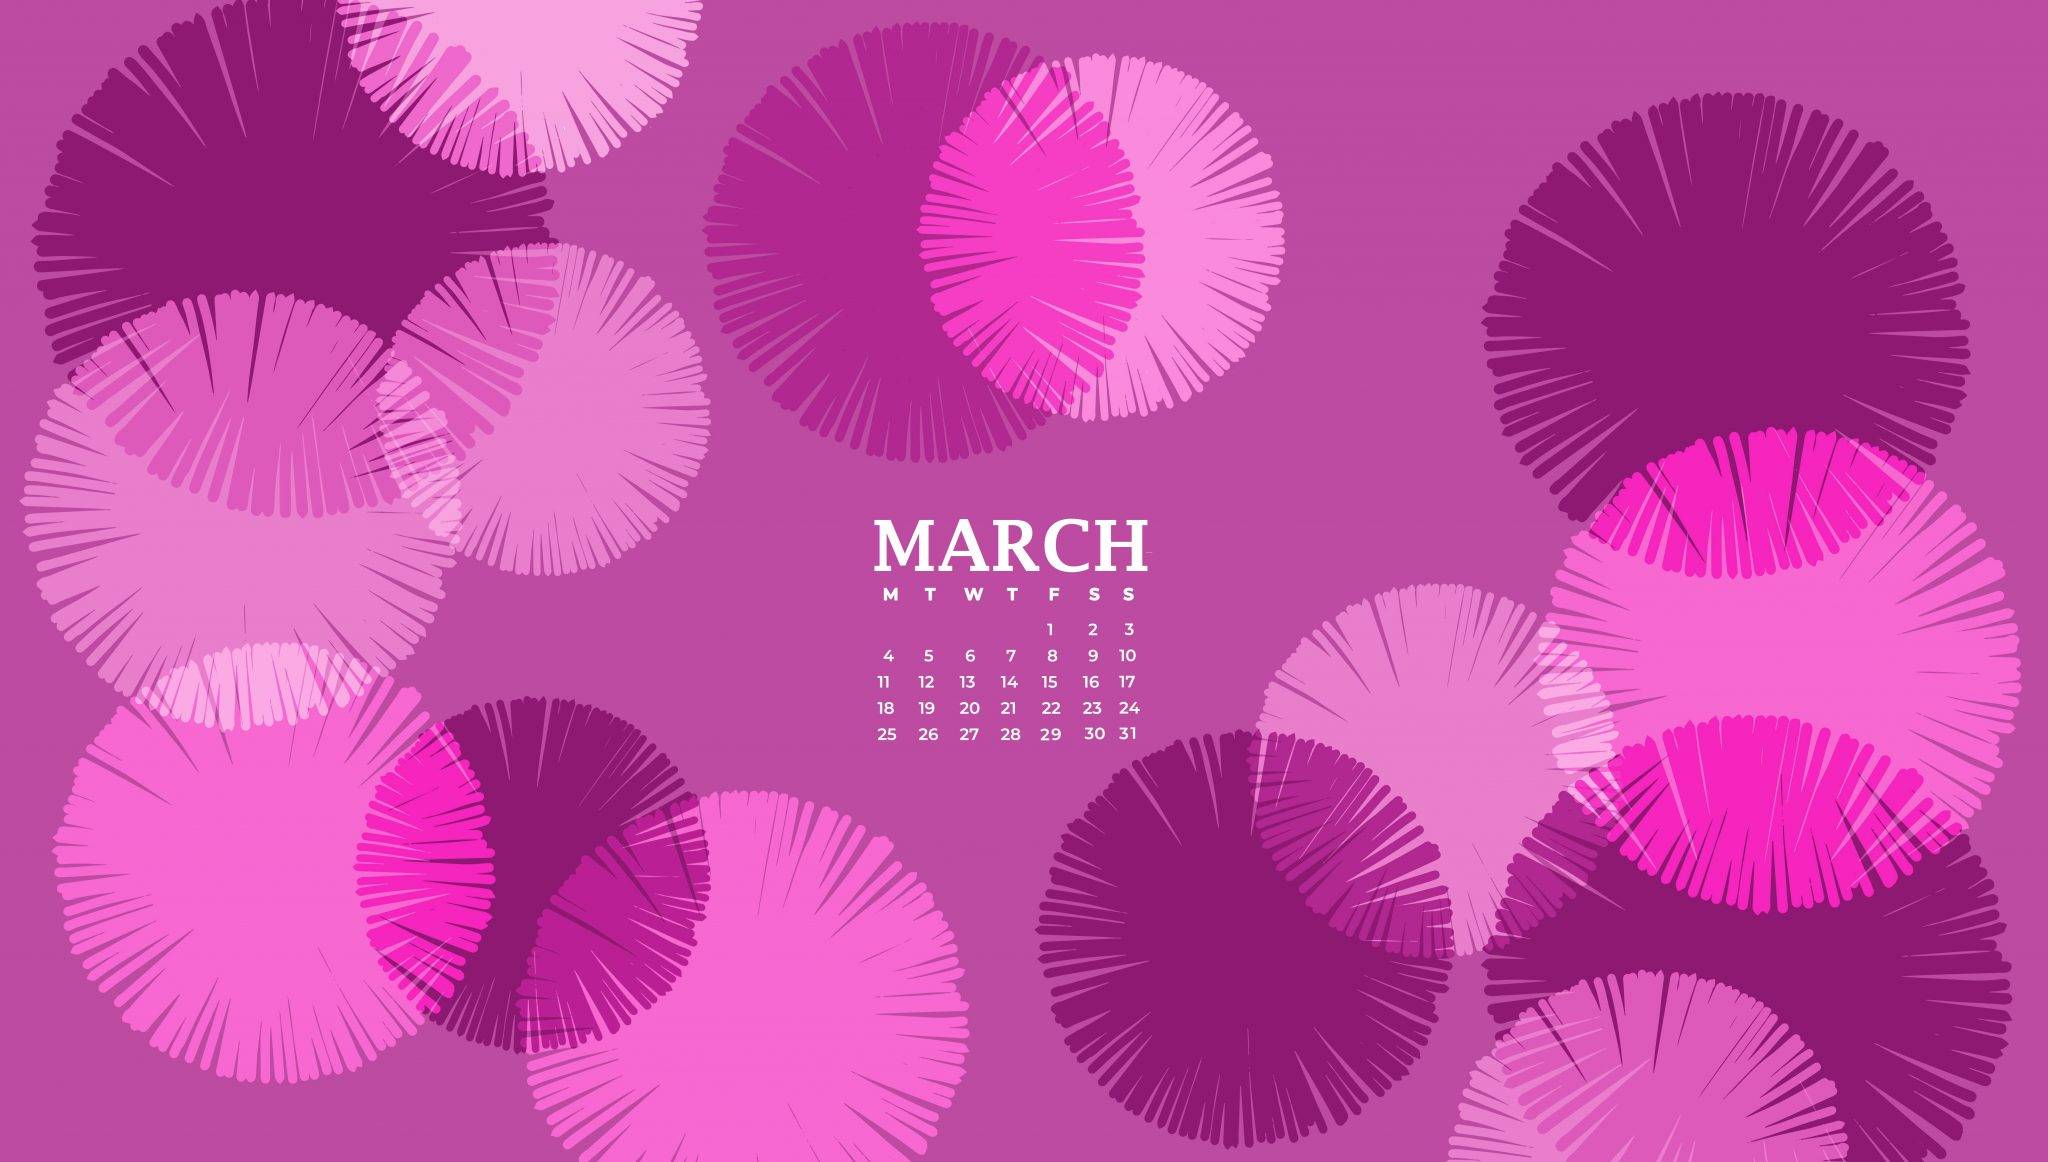 March 2019 Desktop Background Wallpaper